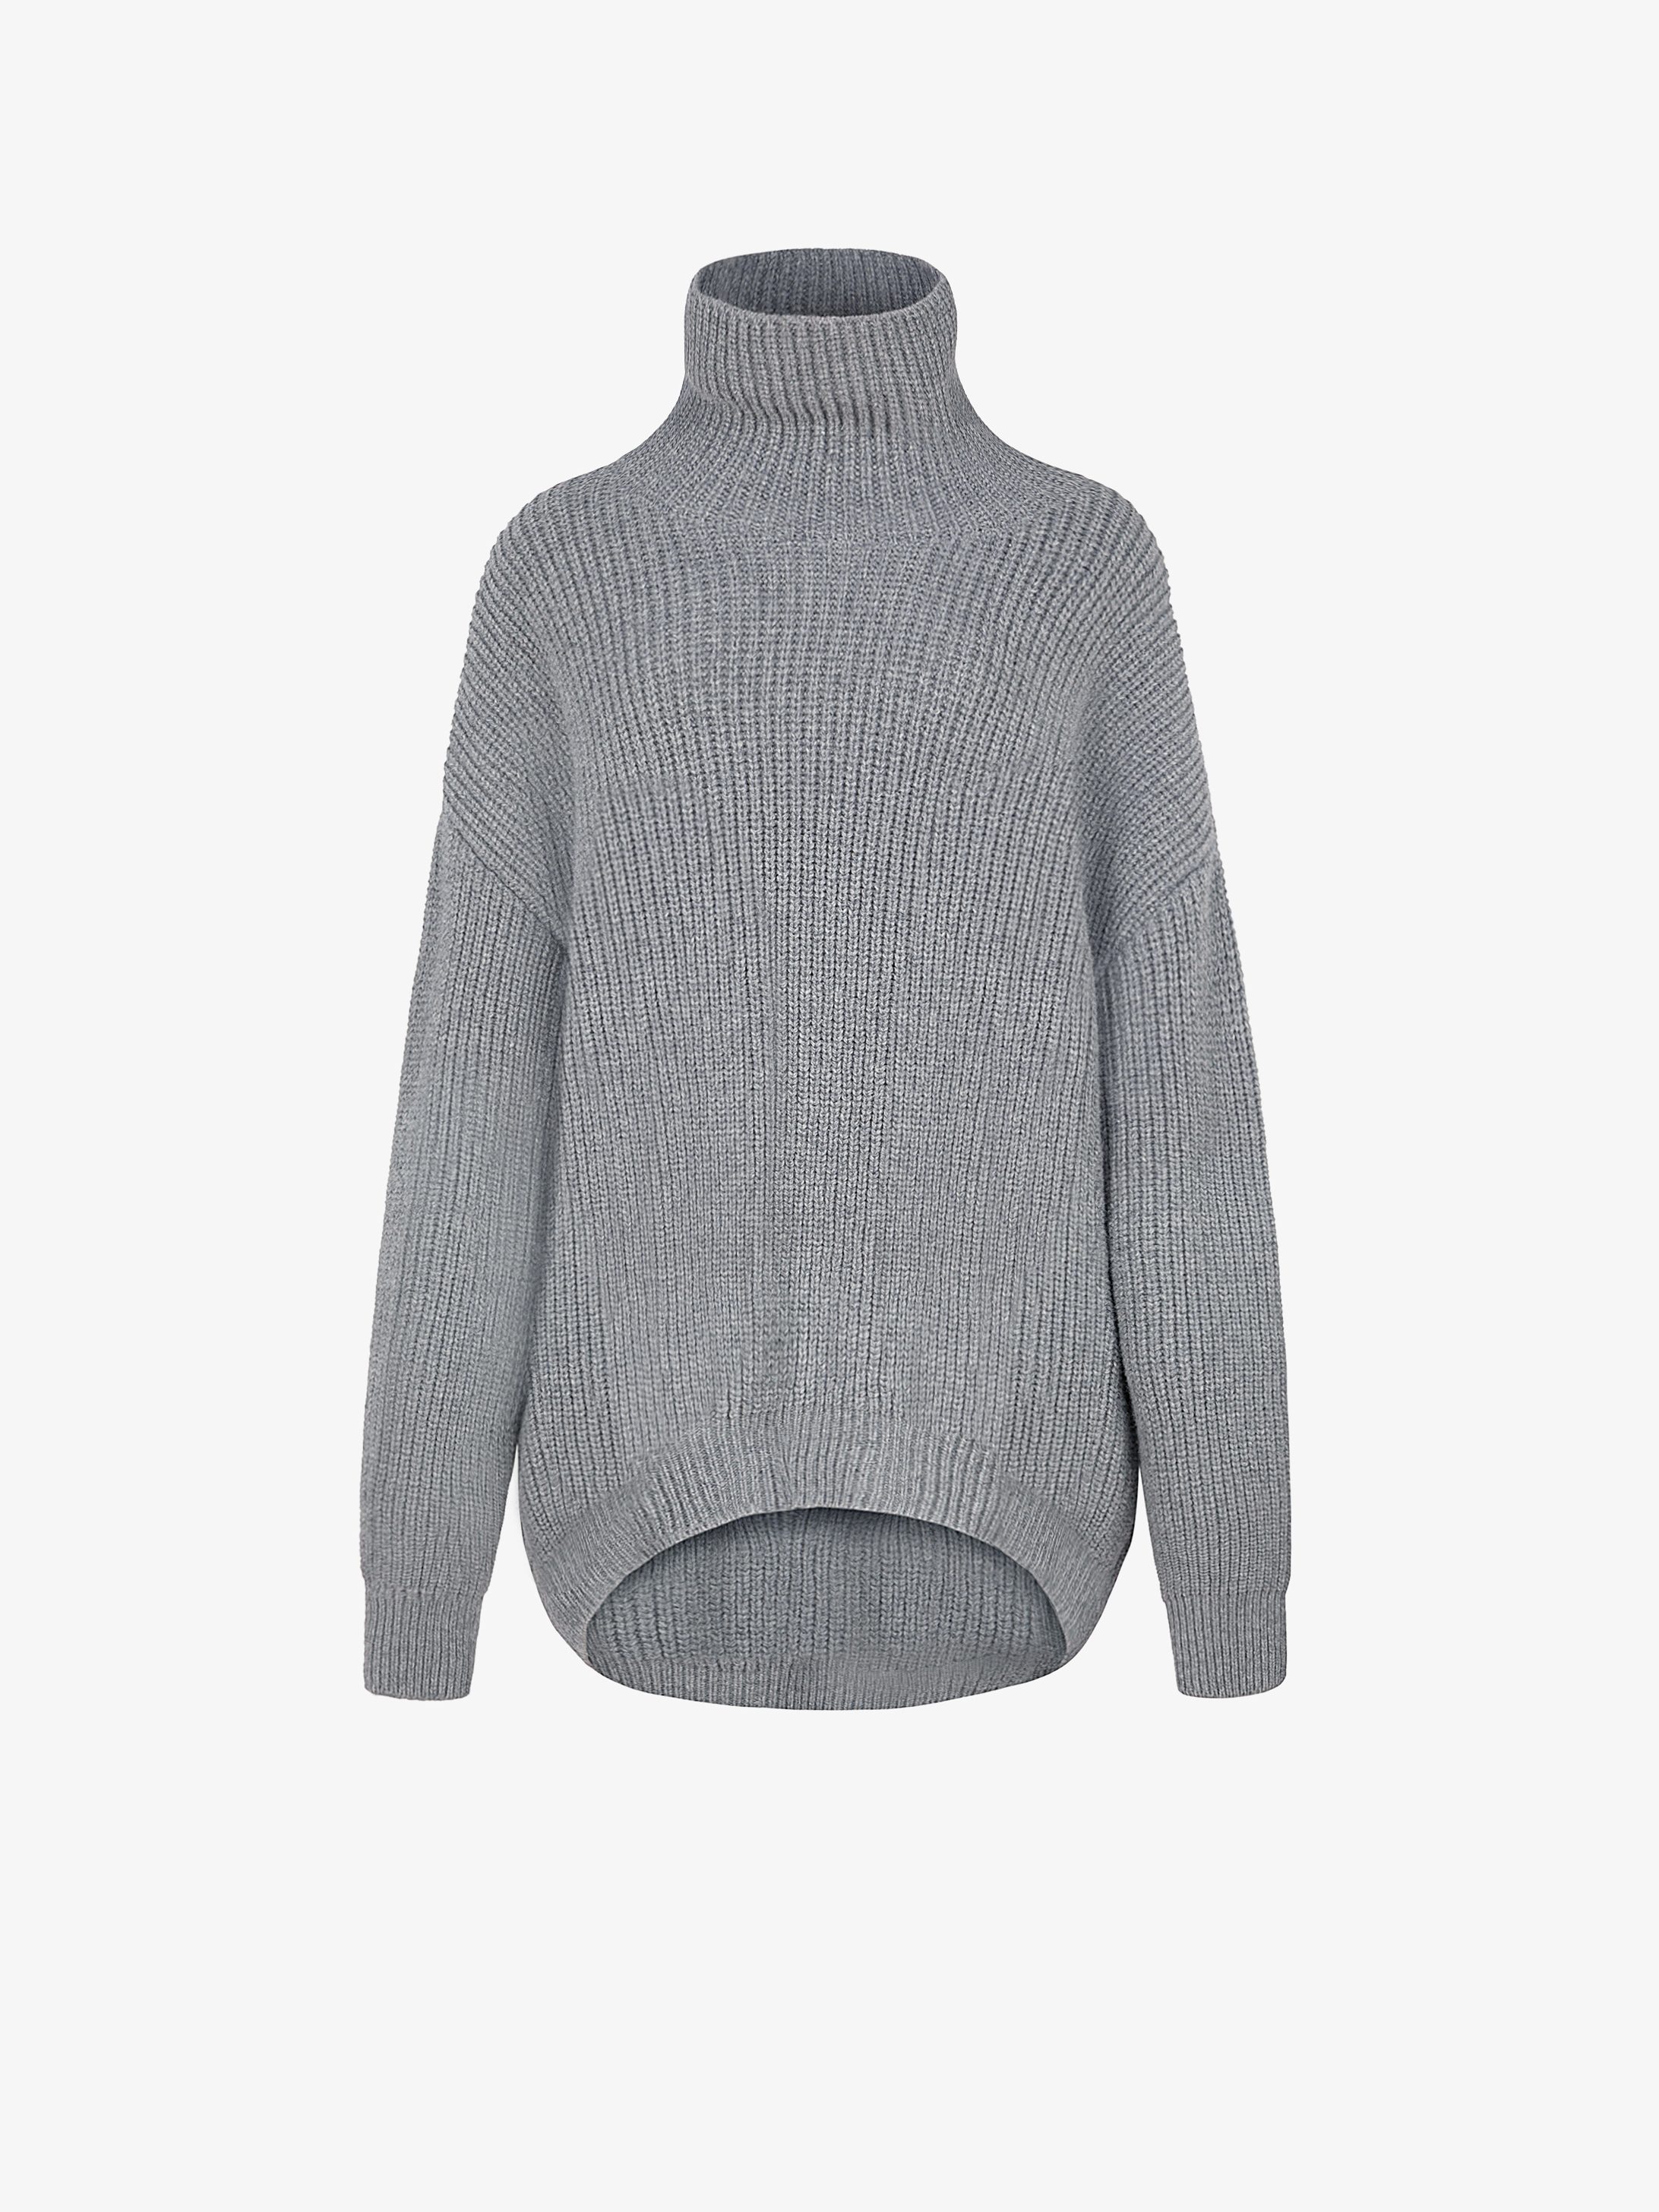 Oversized sweater in alpaca and wool